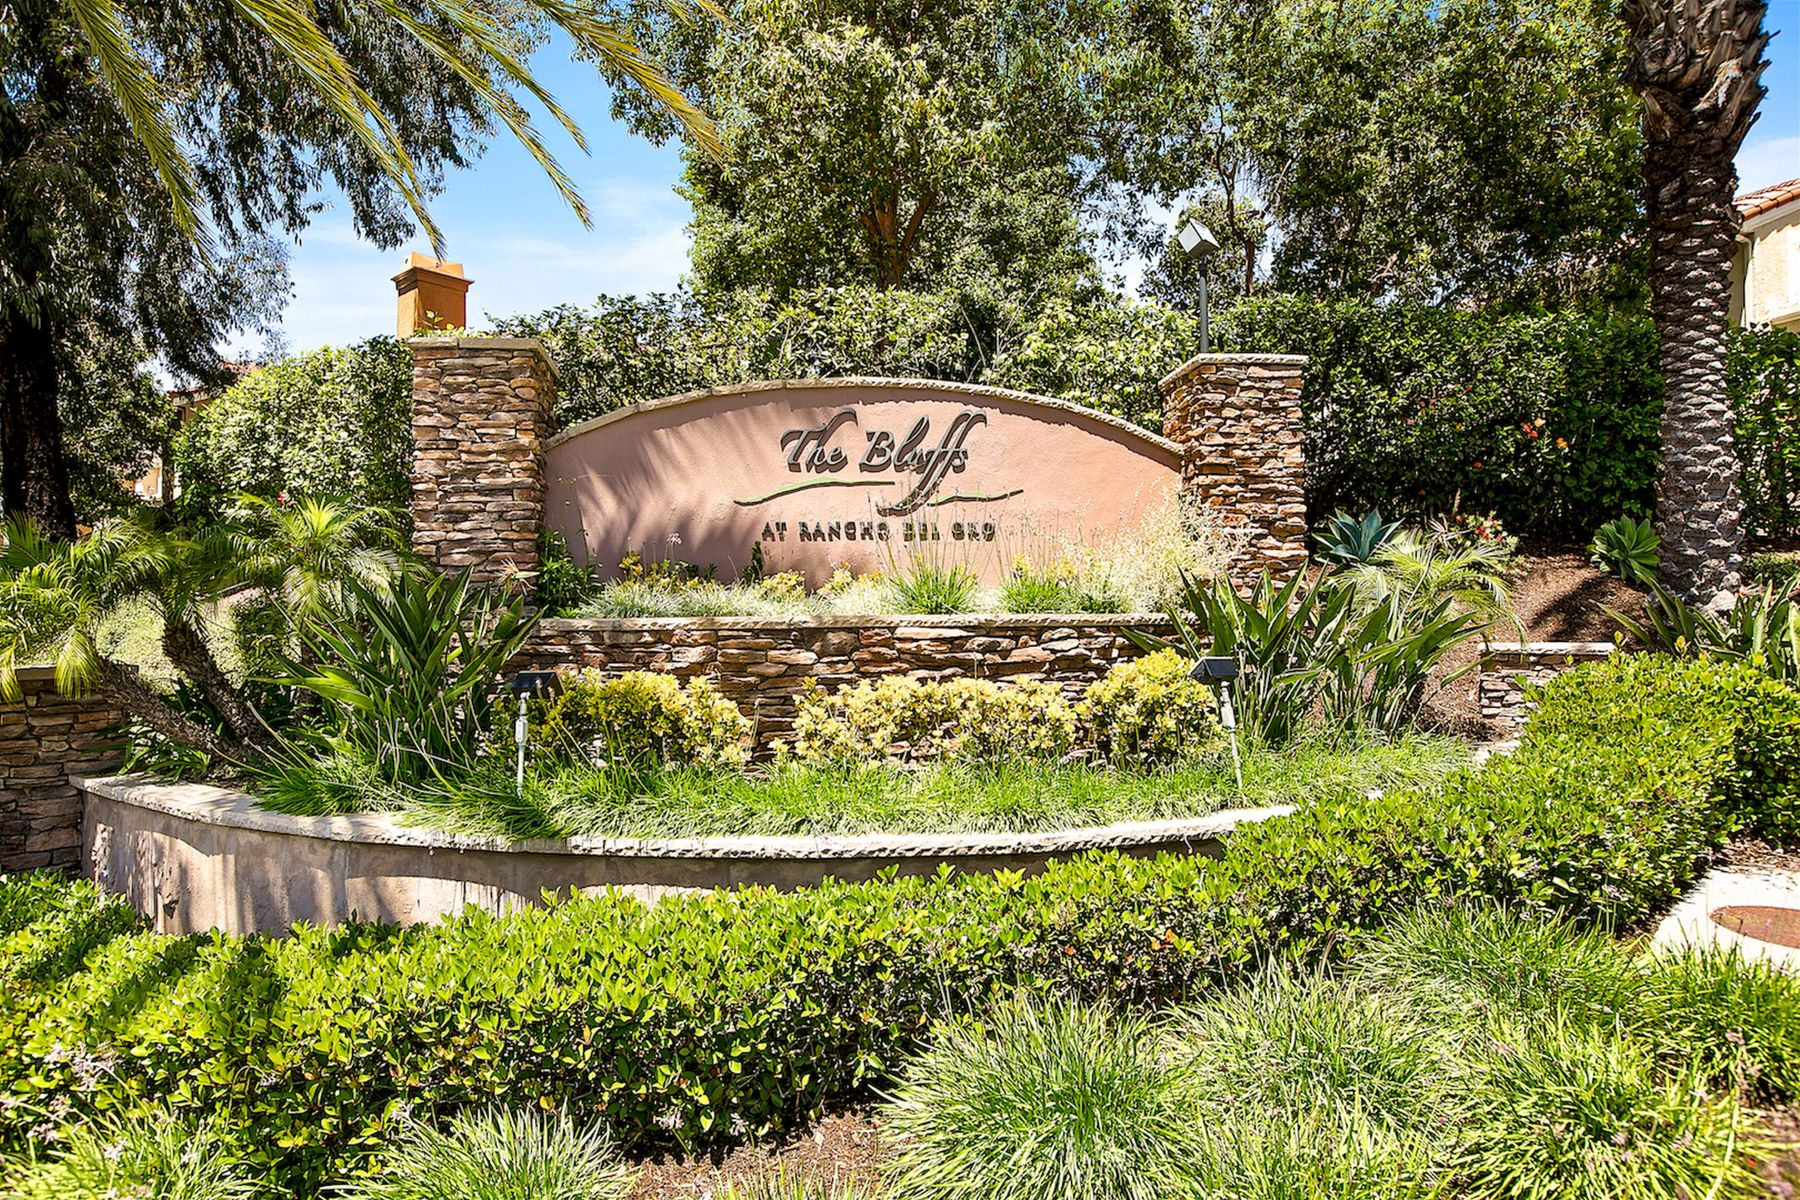 Condominiums for Sale at The Bluffs @ Rancho Del Oro 800 Sea Cliff Way #804 Oceanside, California 92056 United States